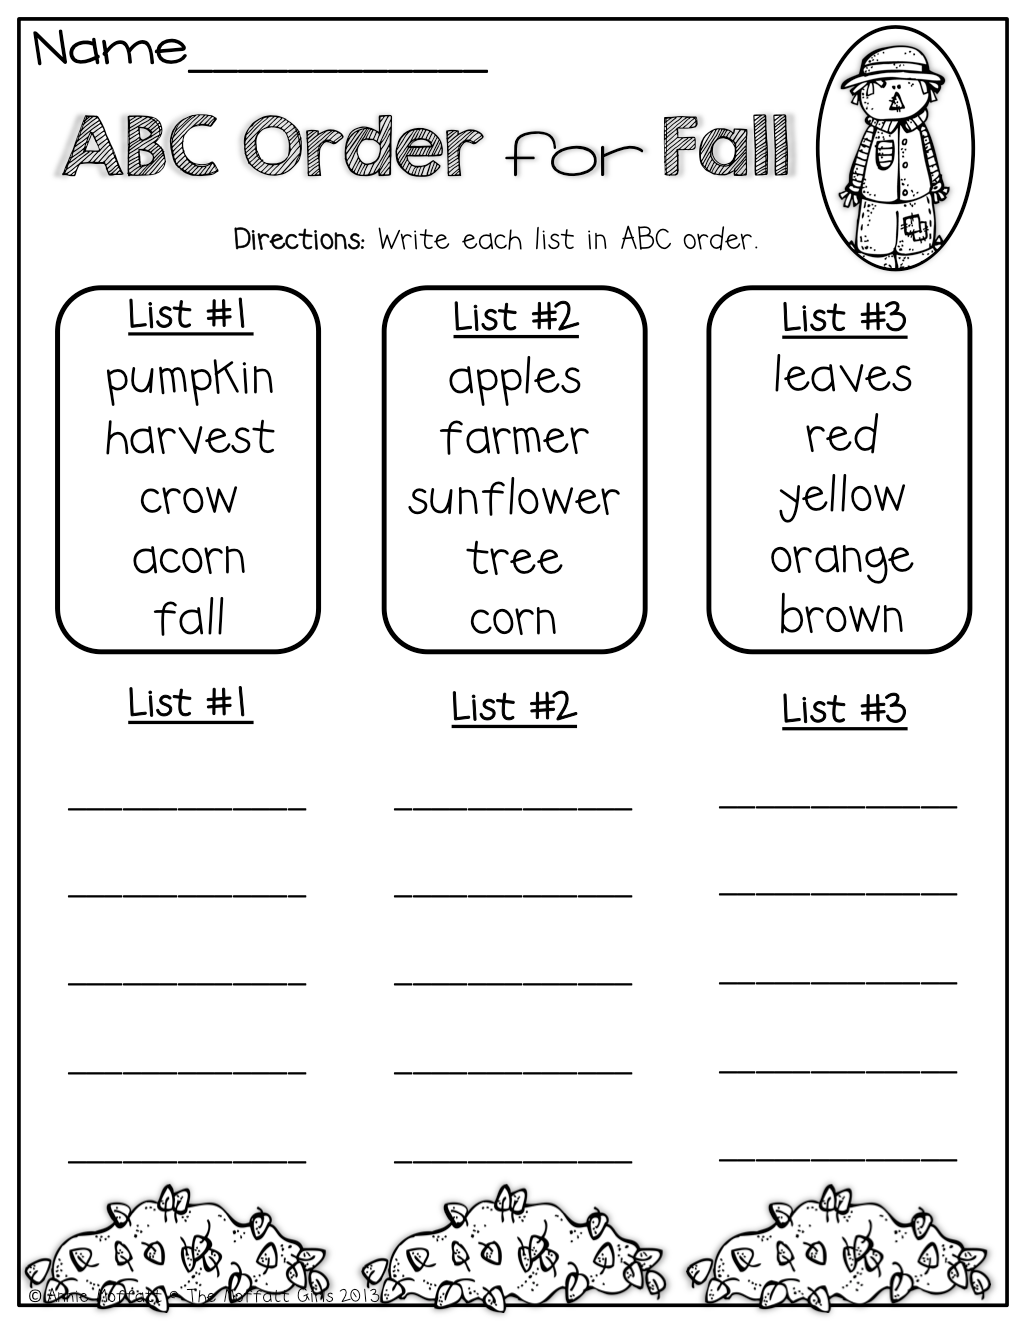 Abc Order For Fall